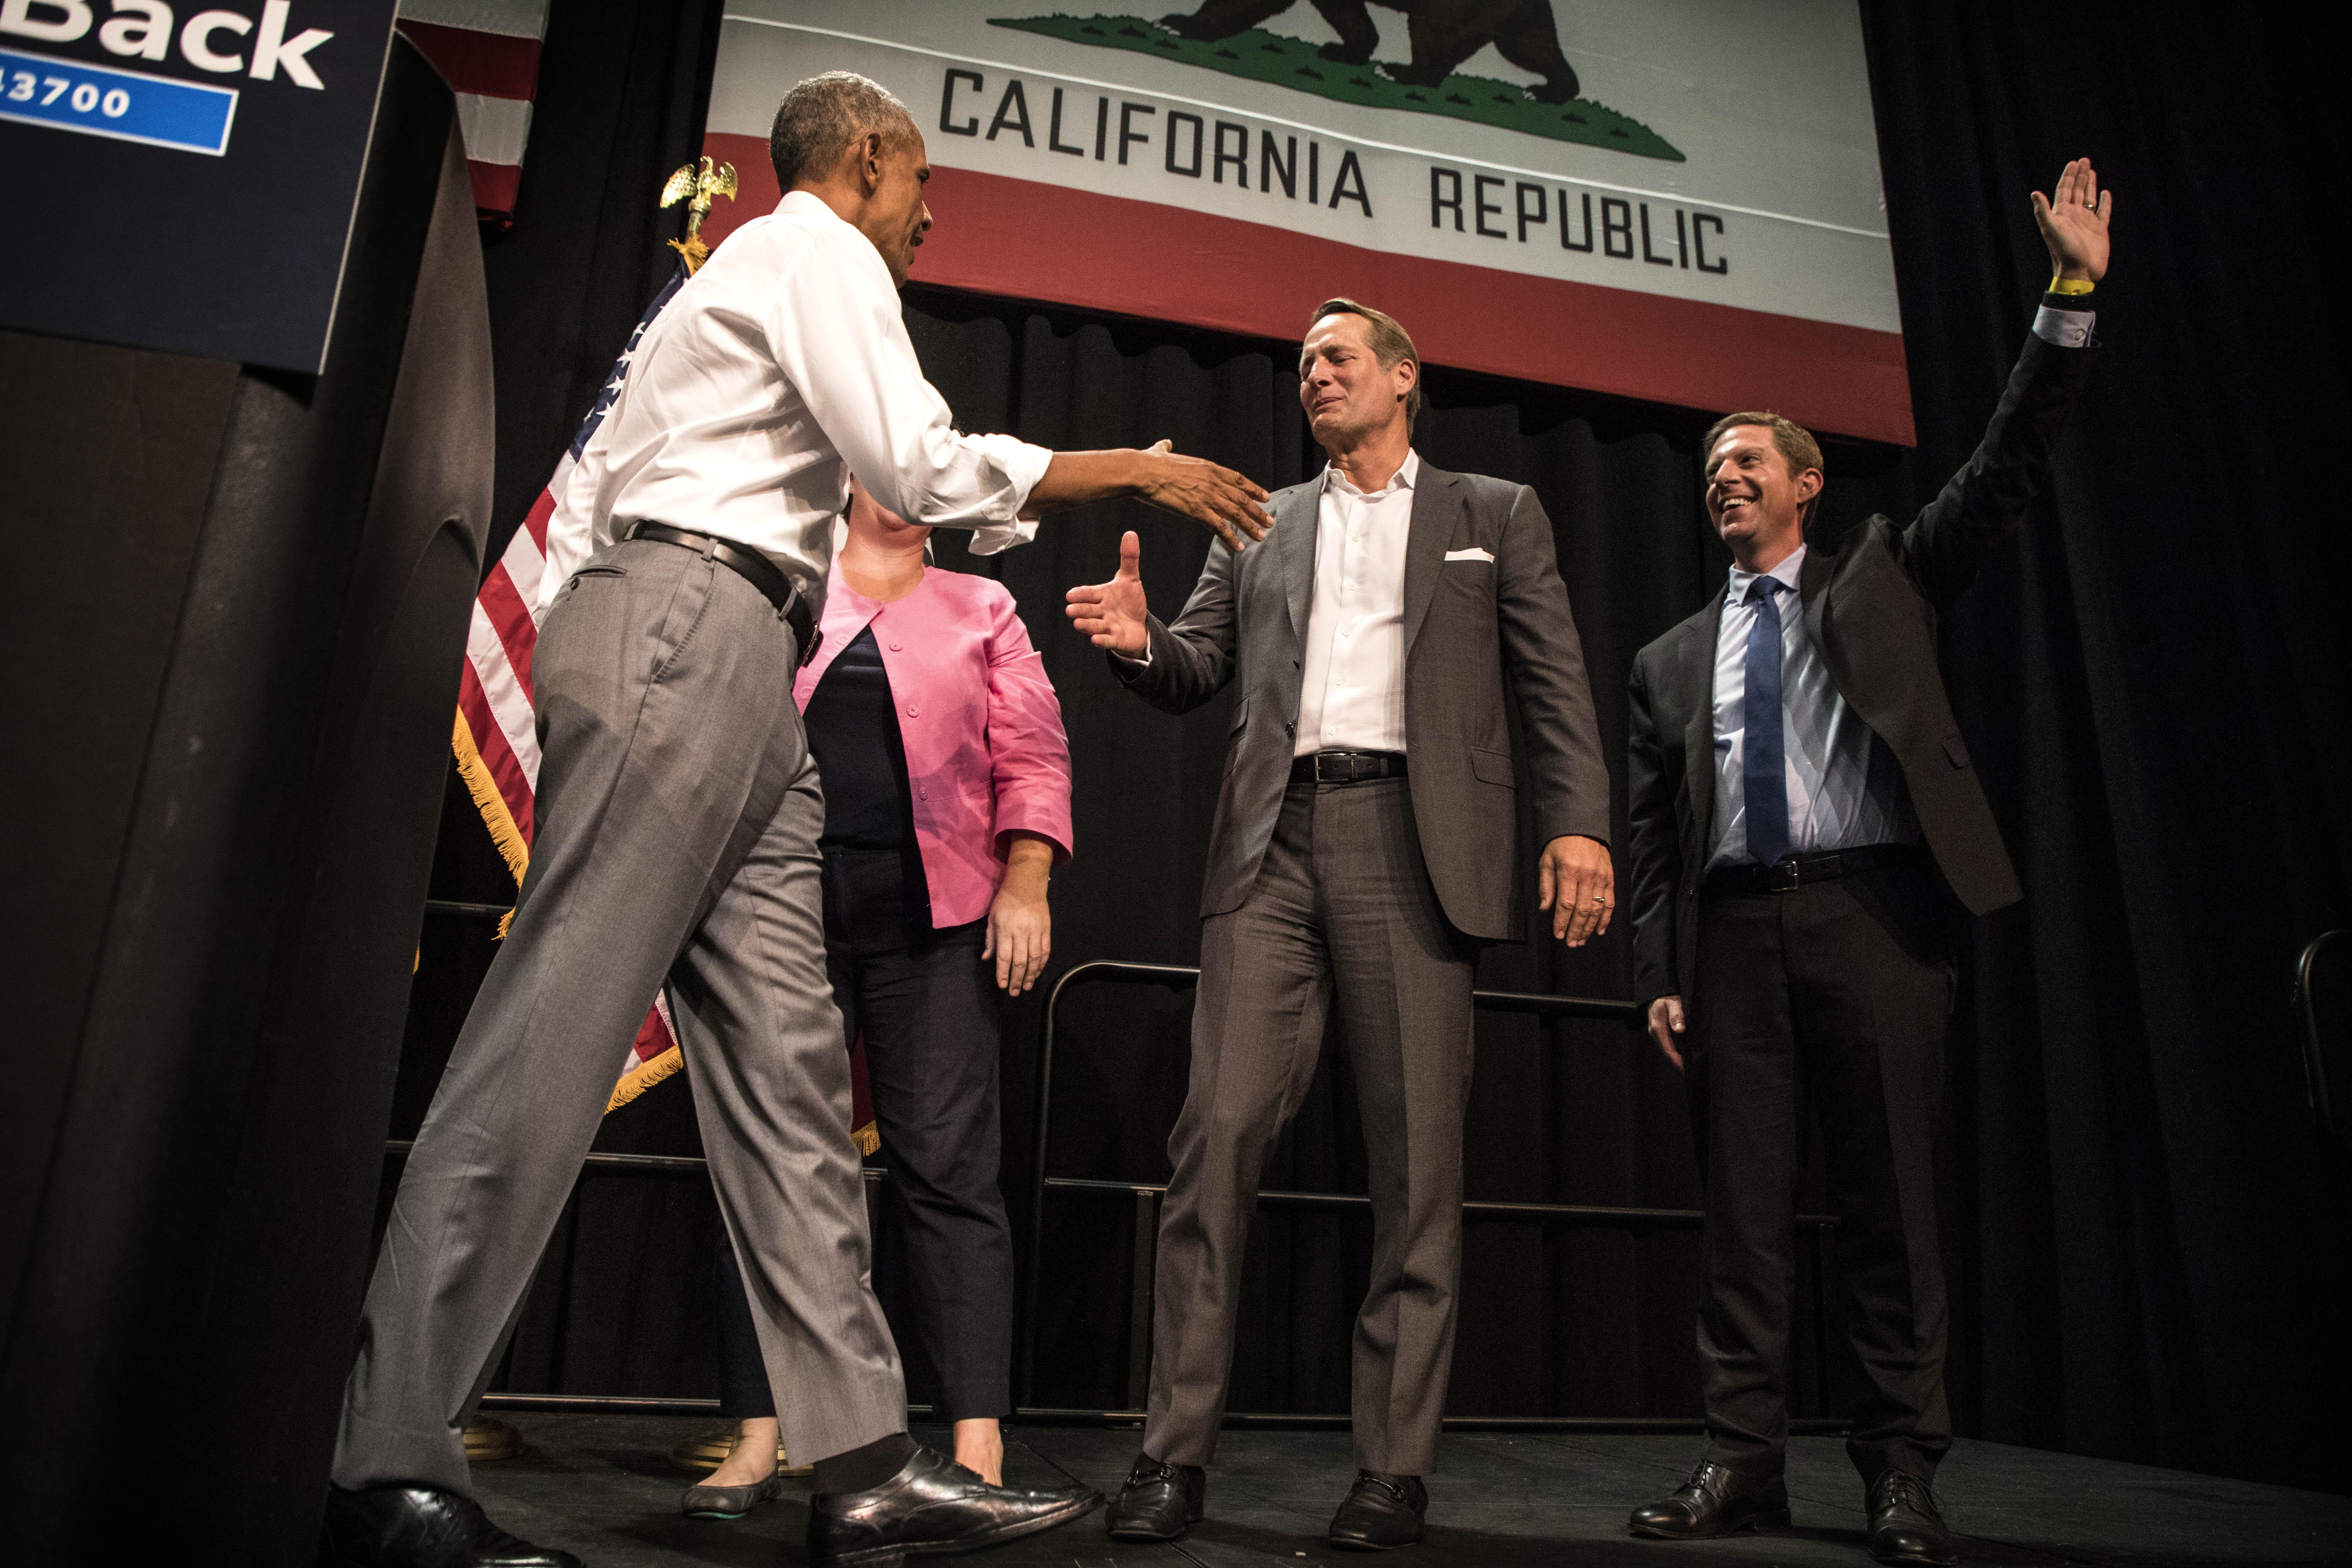 President Barack Obama shakes hands with Katie Porter (CA-45), Harley Rouda (CA-48), and Mike Levin (CA-49) following a DCCC rally on Saturday in Anaheim, California.